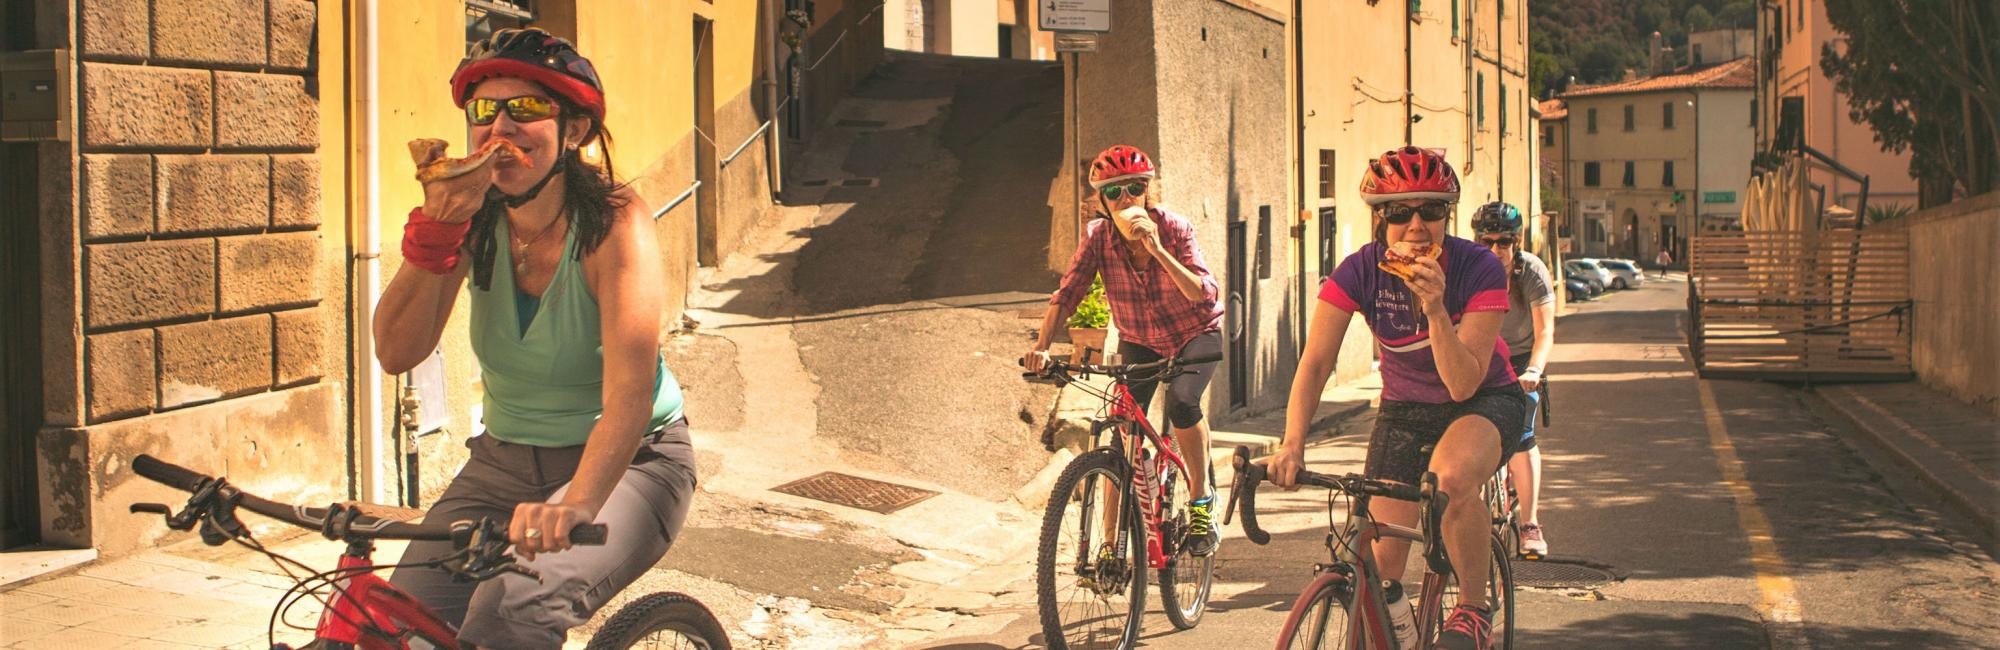 Cycling in Italy? Book your cycling holiday at Italian Bike Tours.